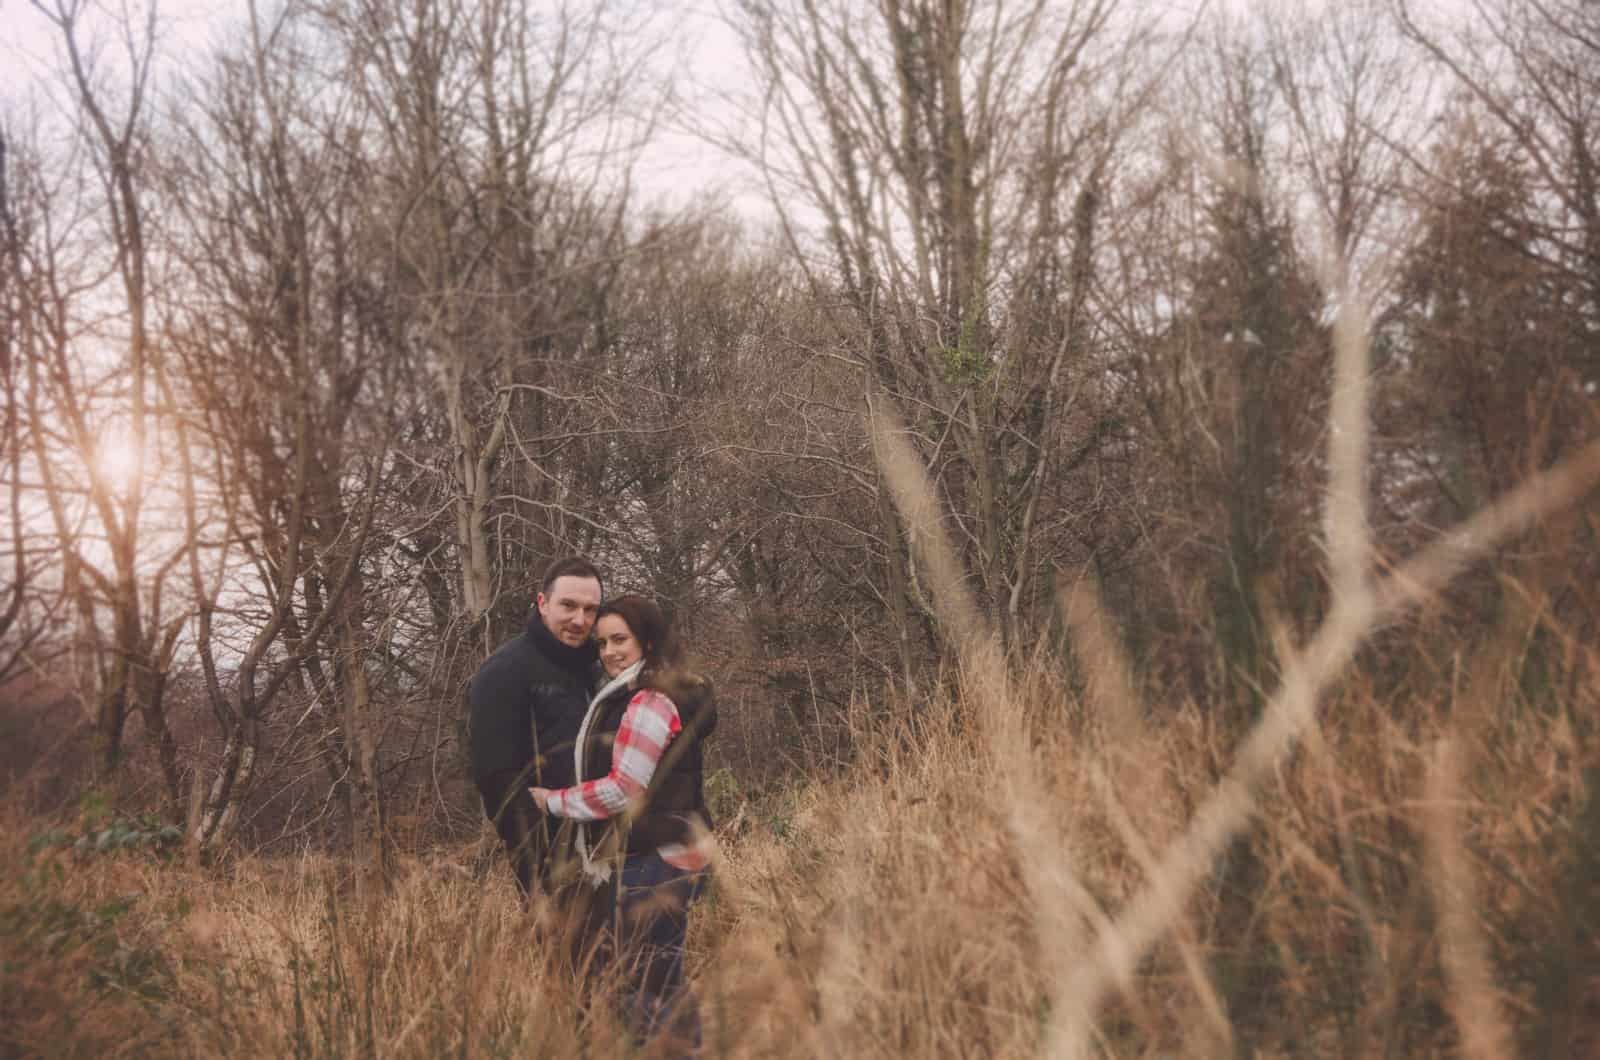 Couple stood together in long grass